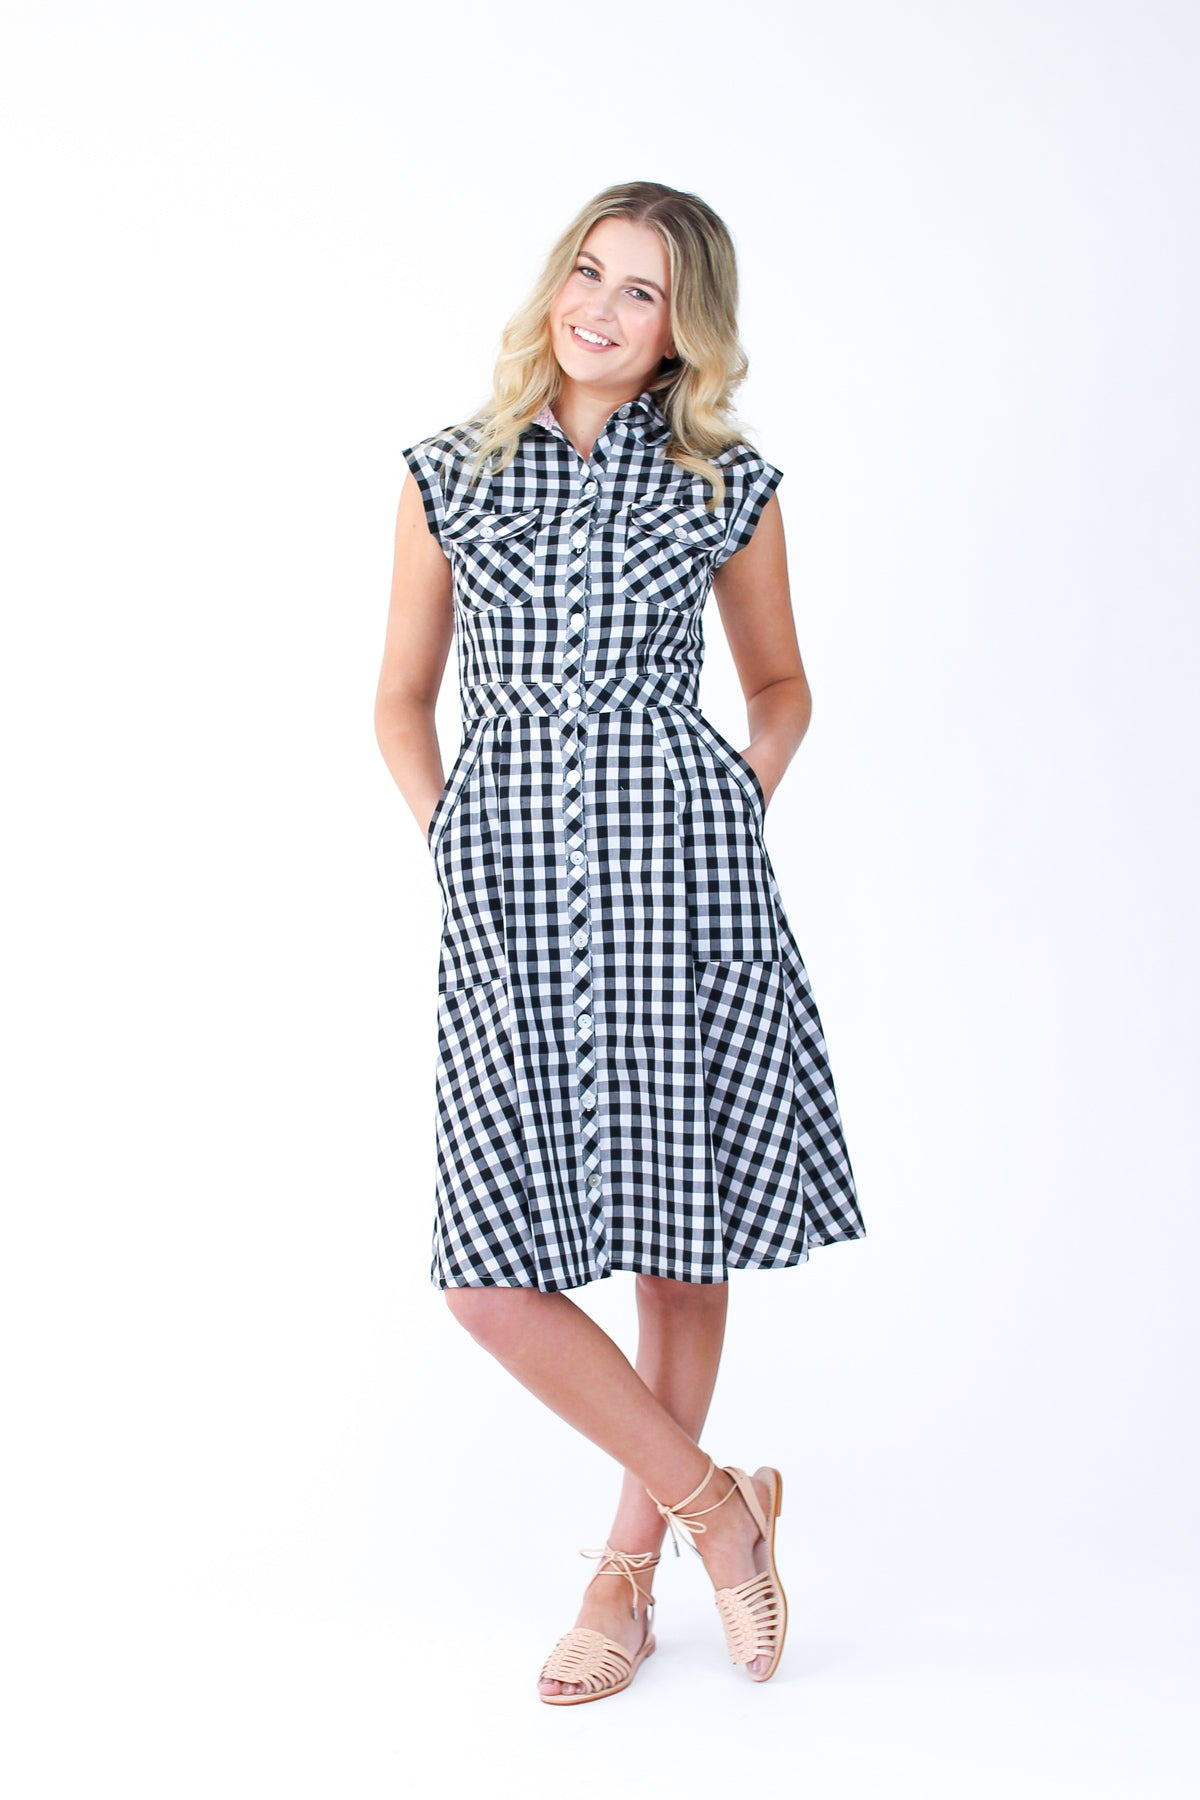 Megan Nielsen Matilda Dress